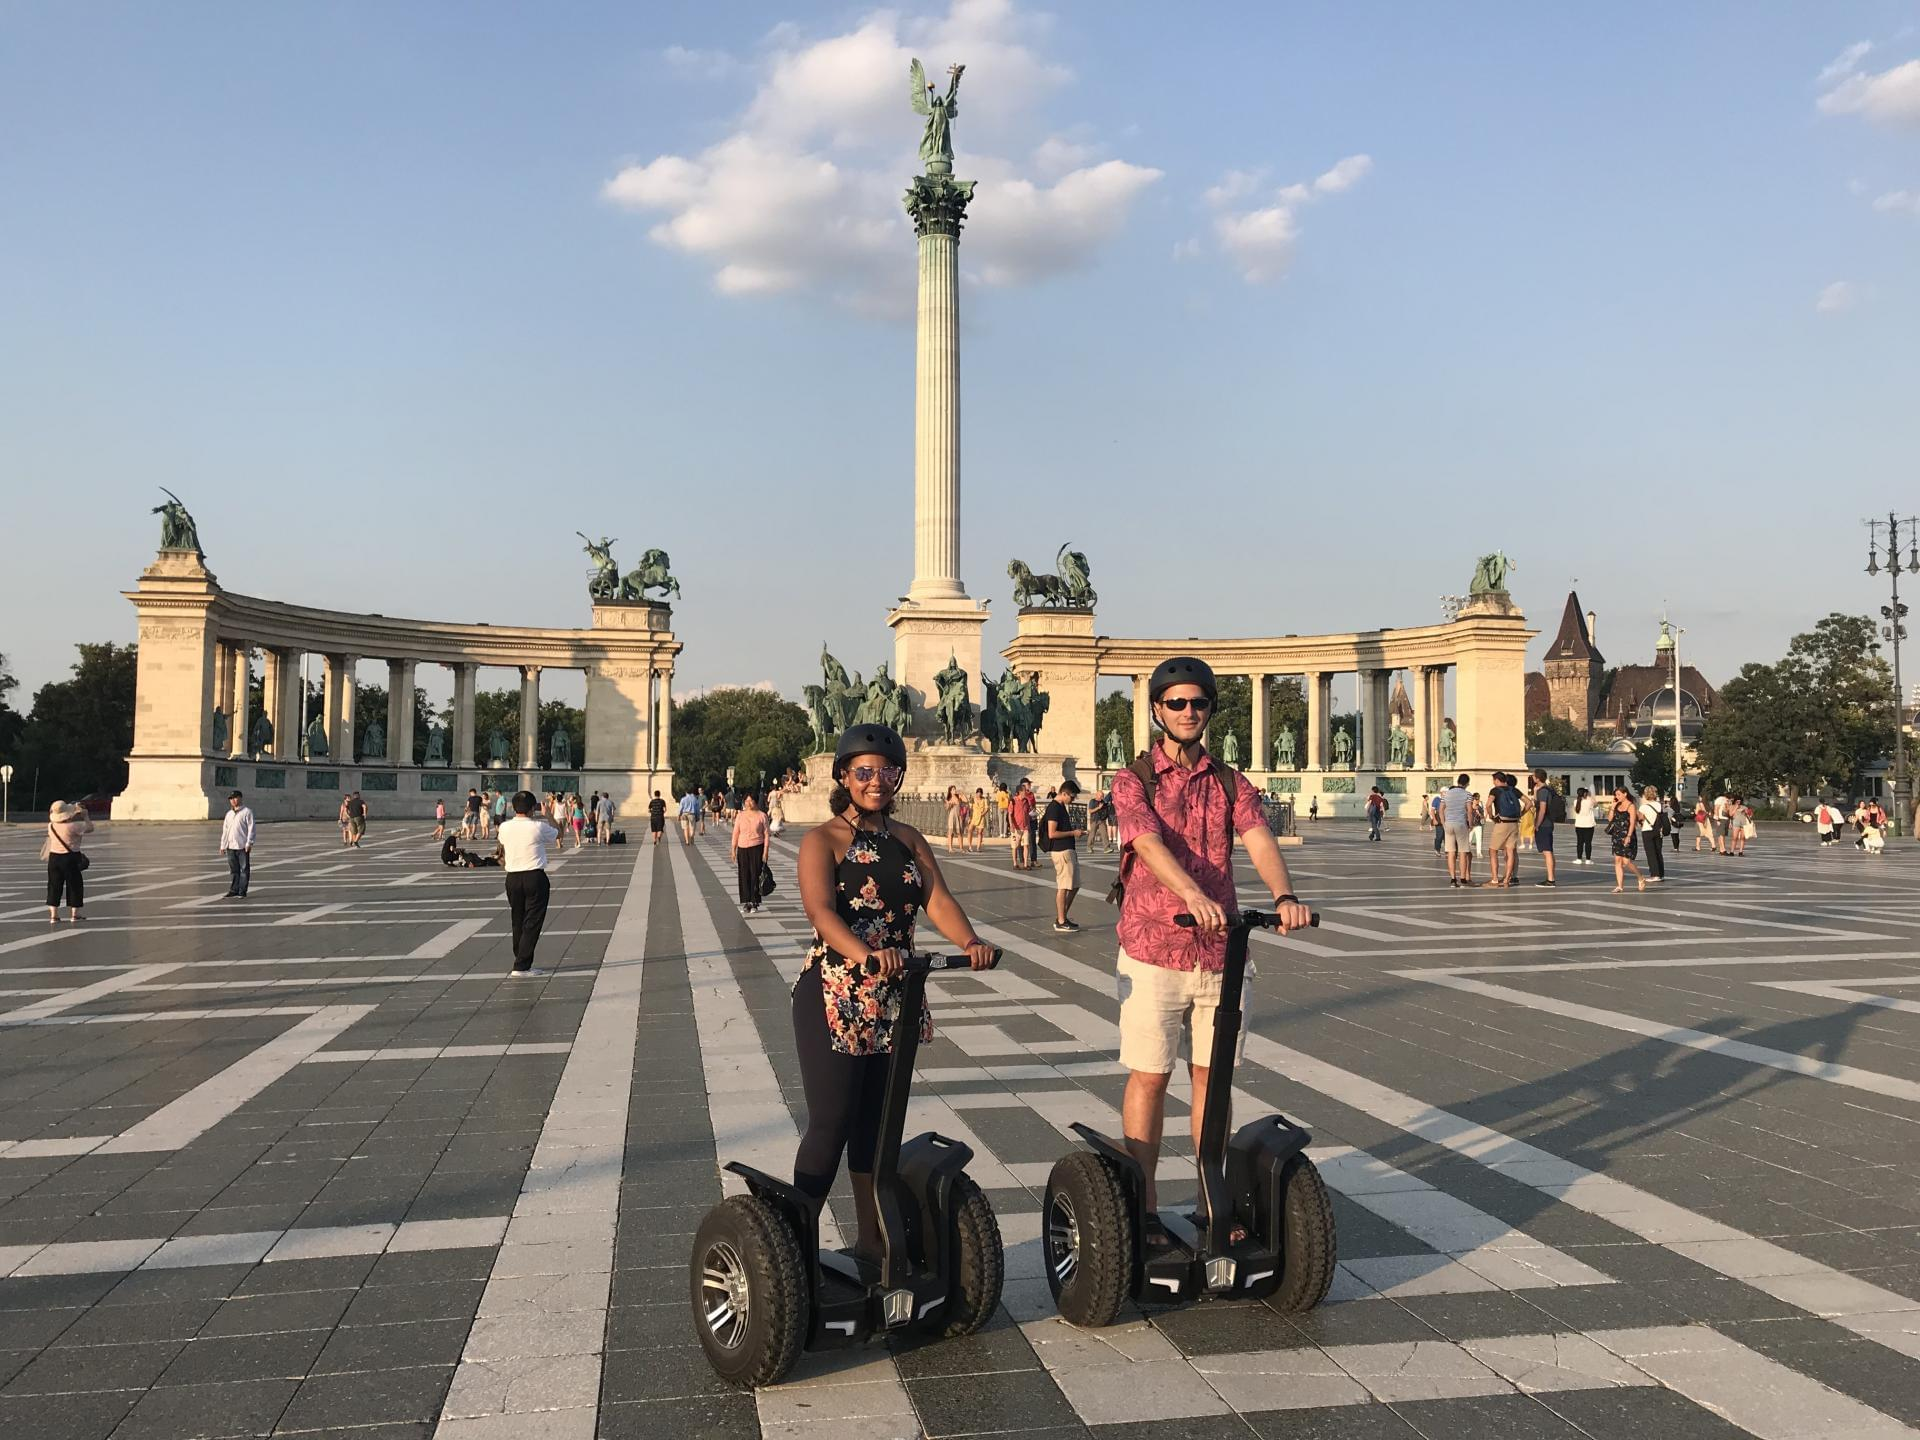 Segway tour on the Heroes Square